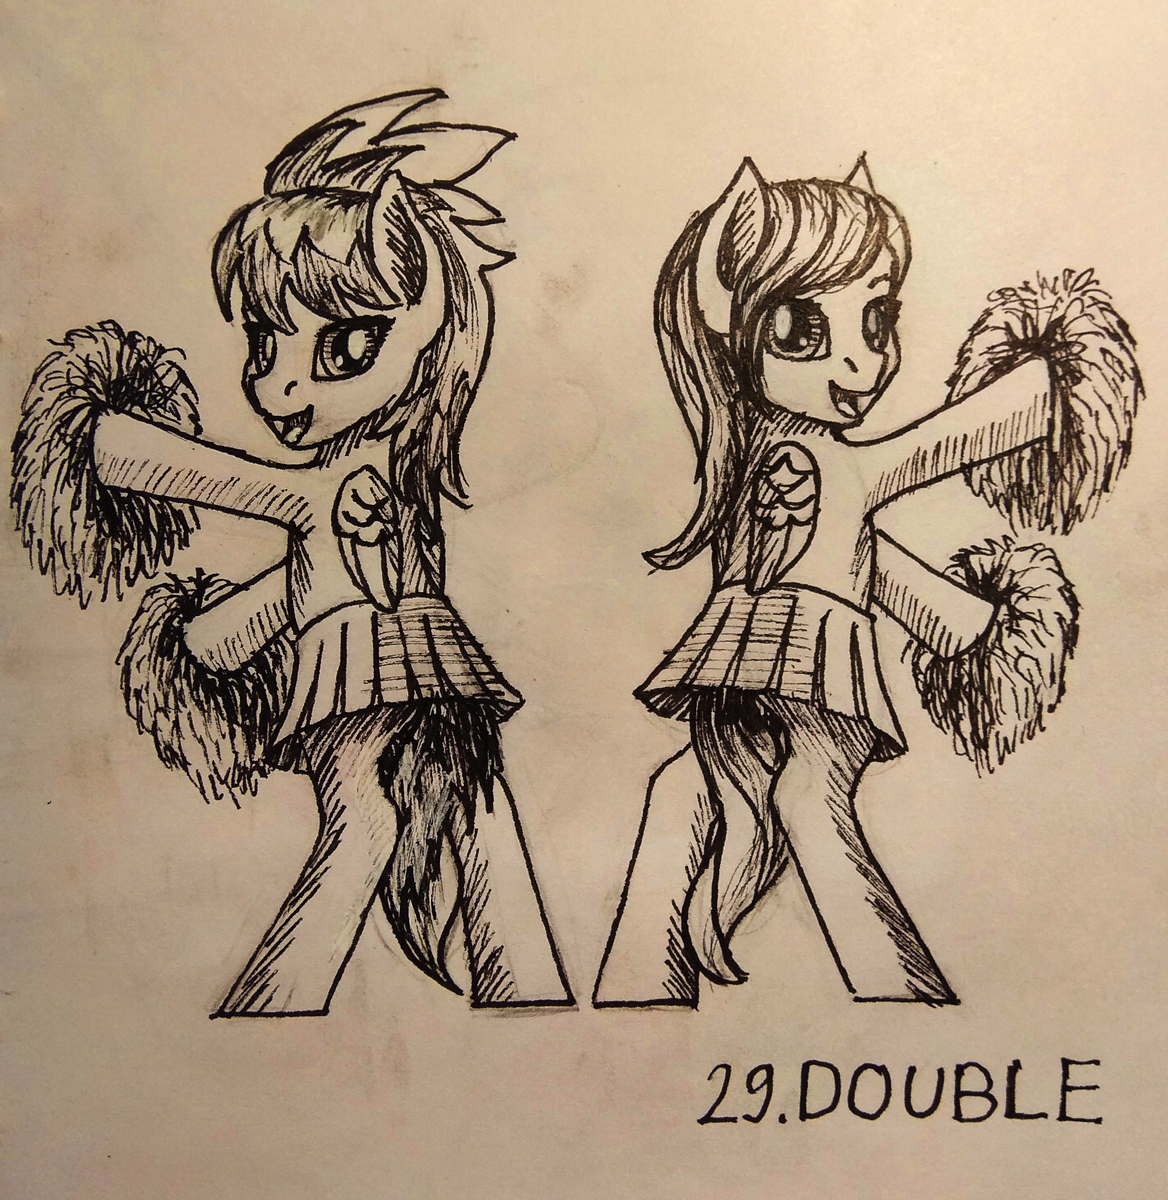 [Inktober] Day 29: Double